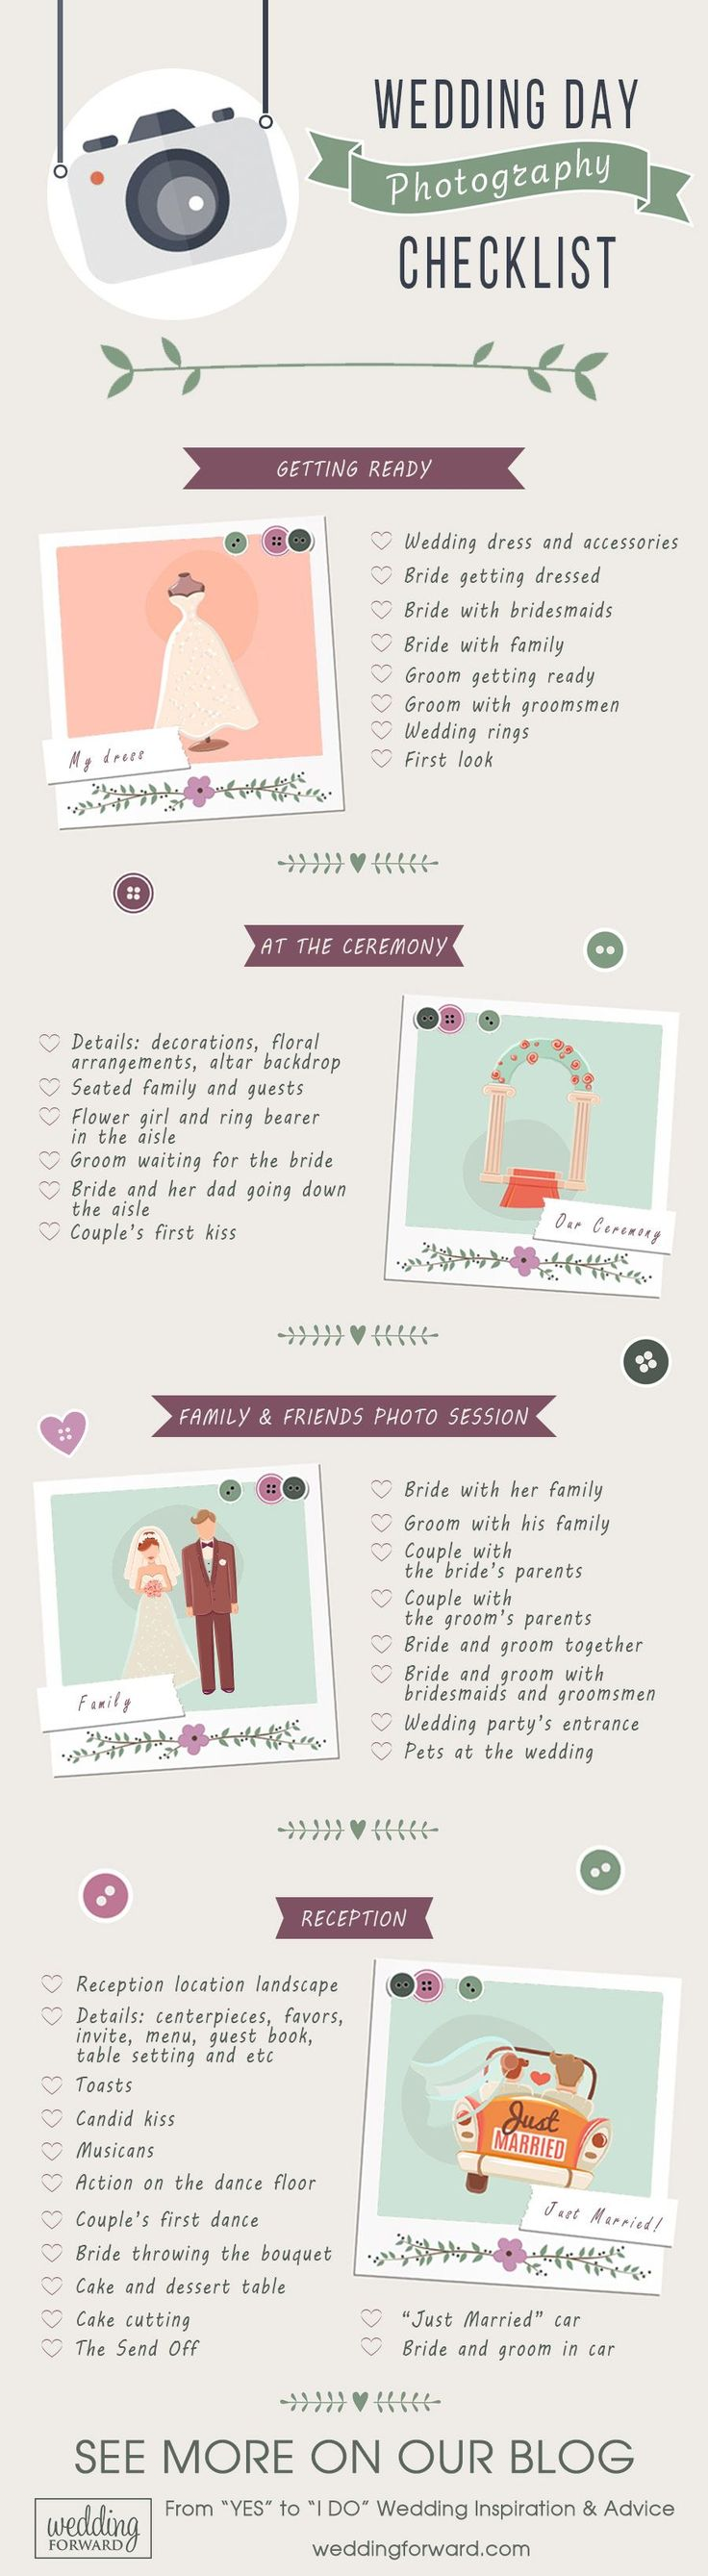 27 Must-Take Romantic Photos On Your Wedding Day ❤️ Fanny, beautiful, charming, touching moments...all of them have to take place in your wedding album to say all story. Use this wedding day photo checklist that don't forget anything. See more: http://www.weddingforward.com/romantic-photos-wedding-day/ #wedding #photos #checklist